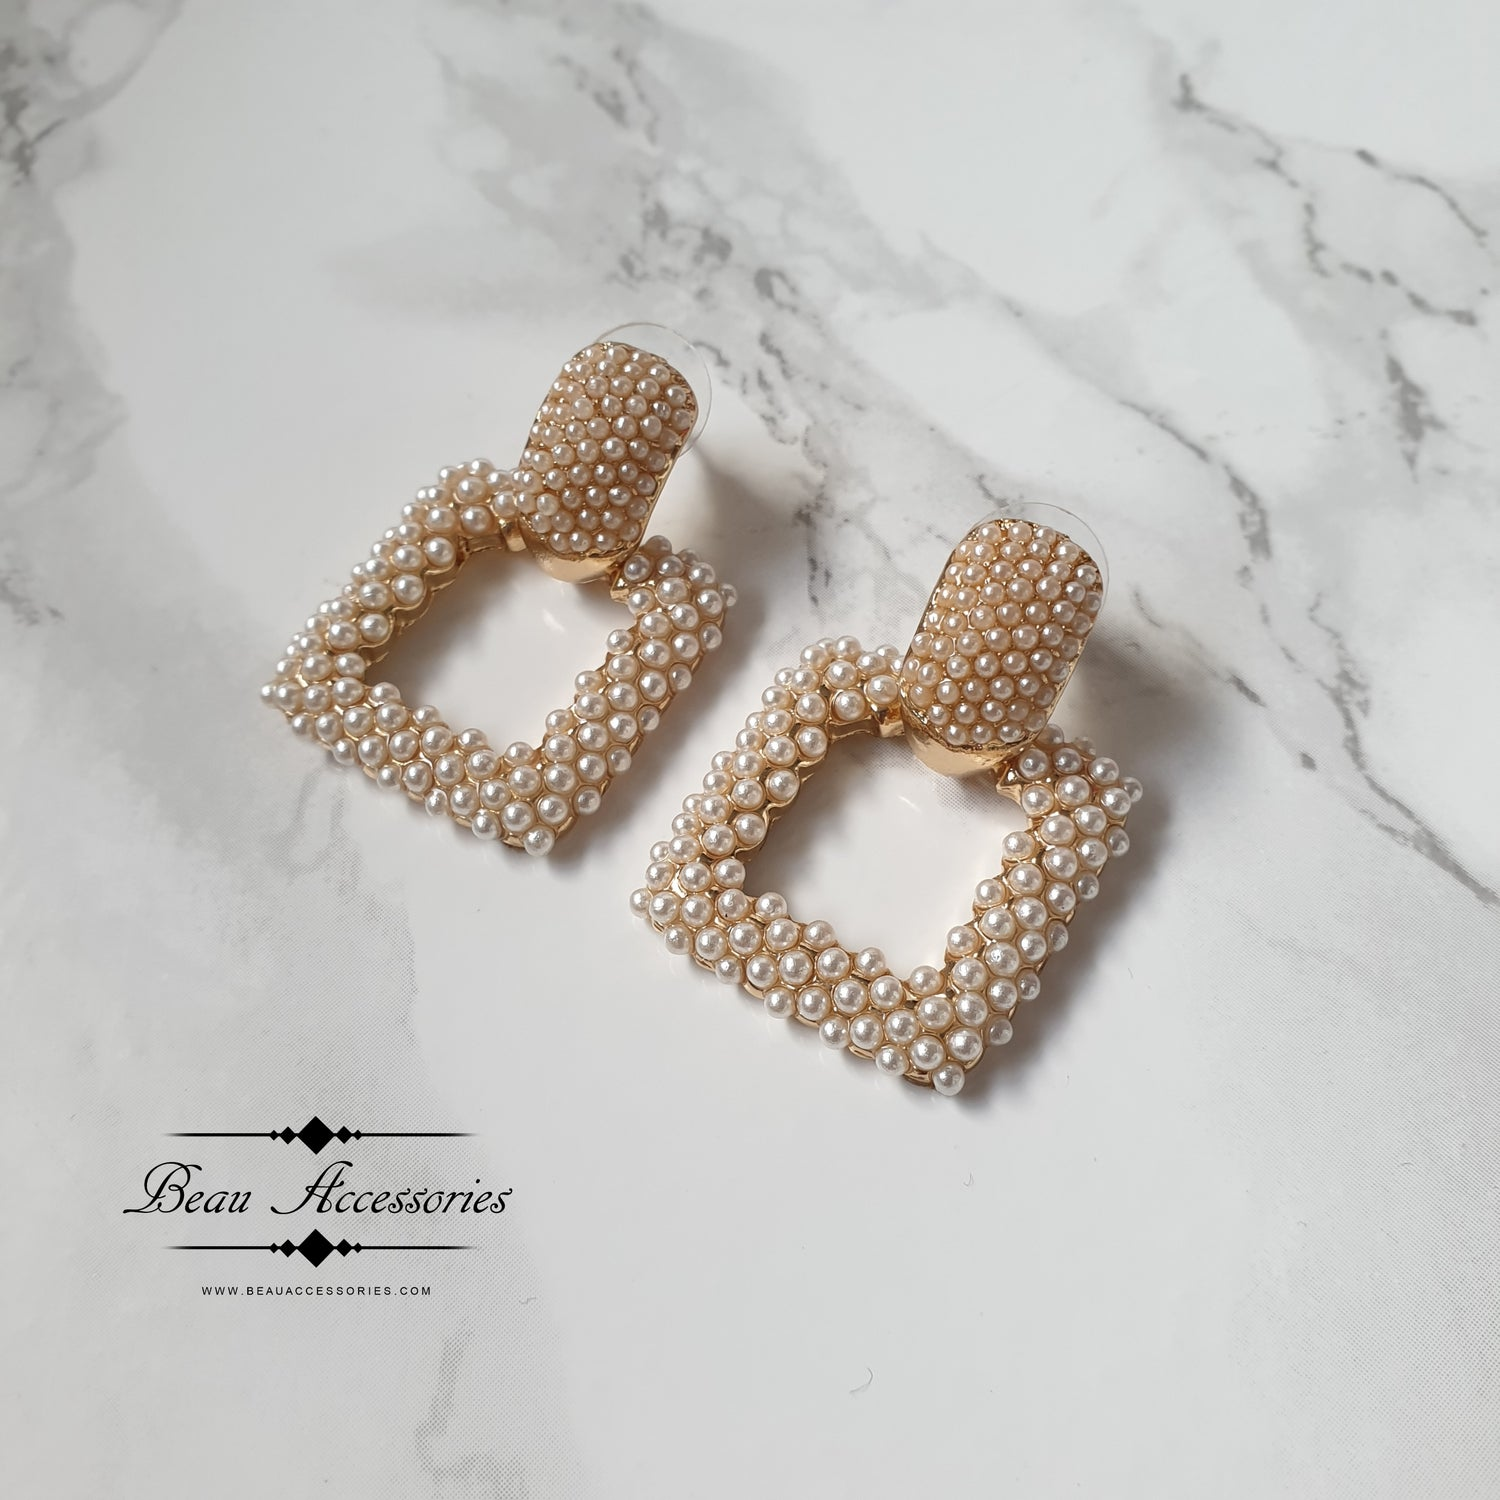 Image of Pearl Square Statement Earrings